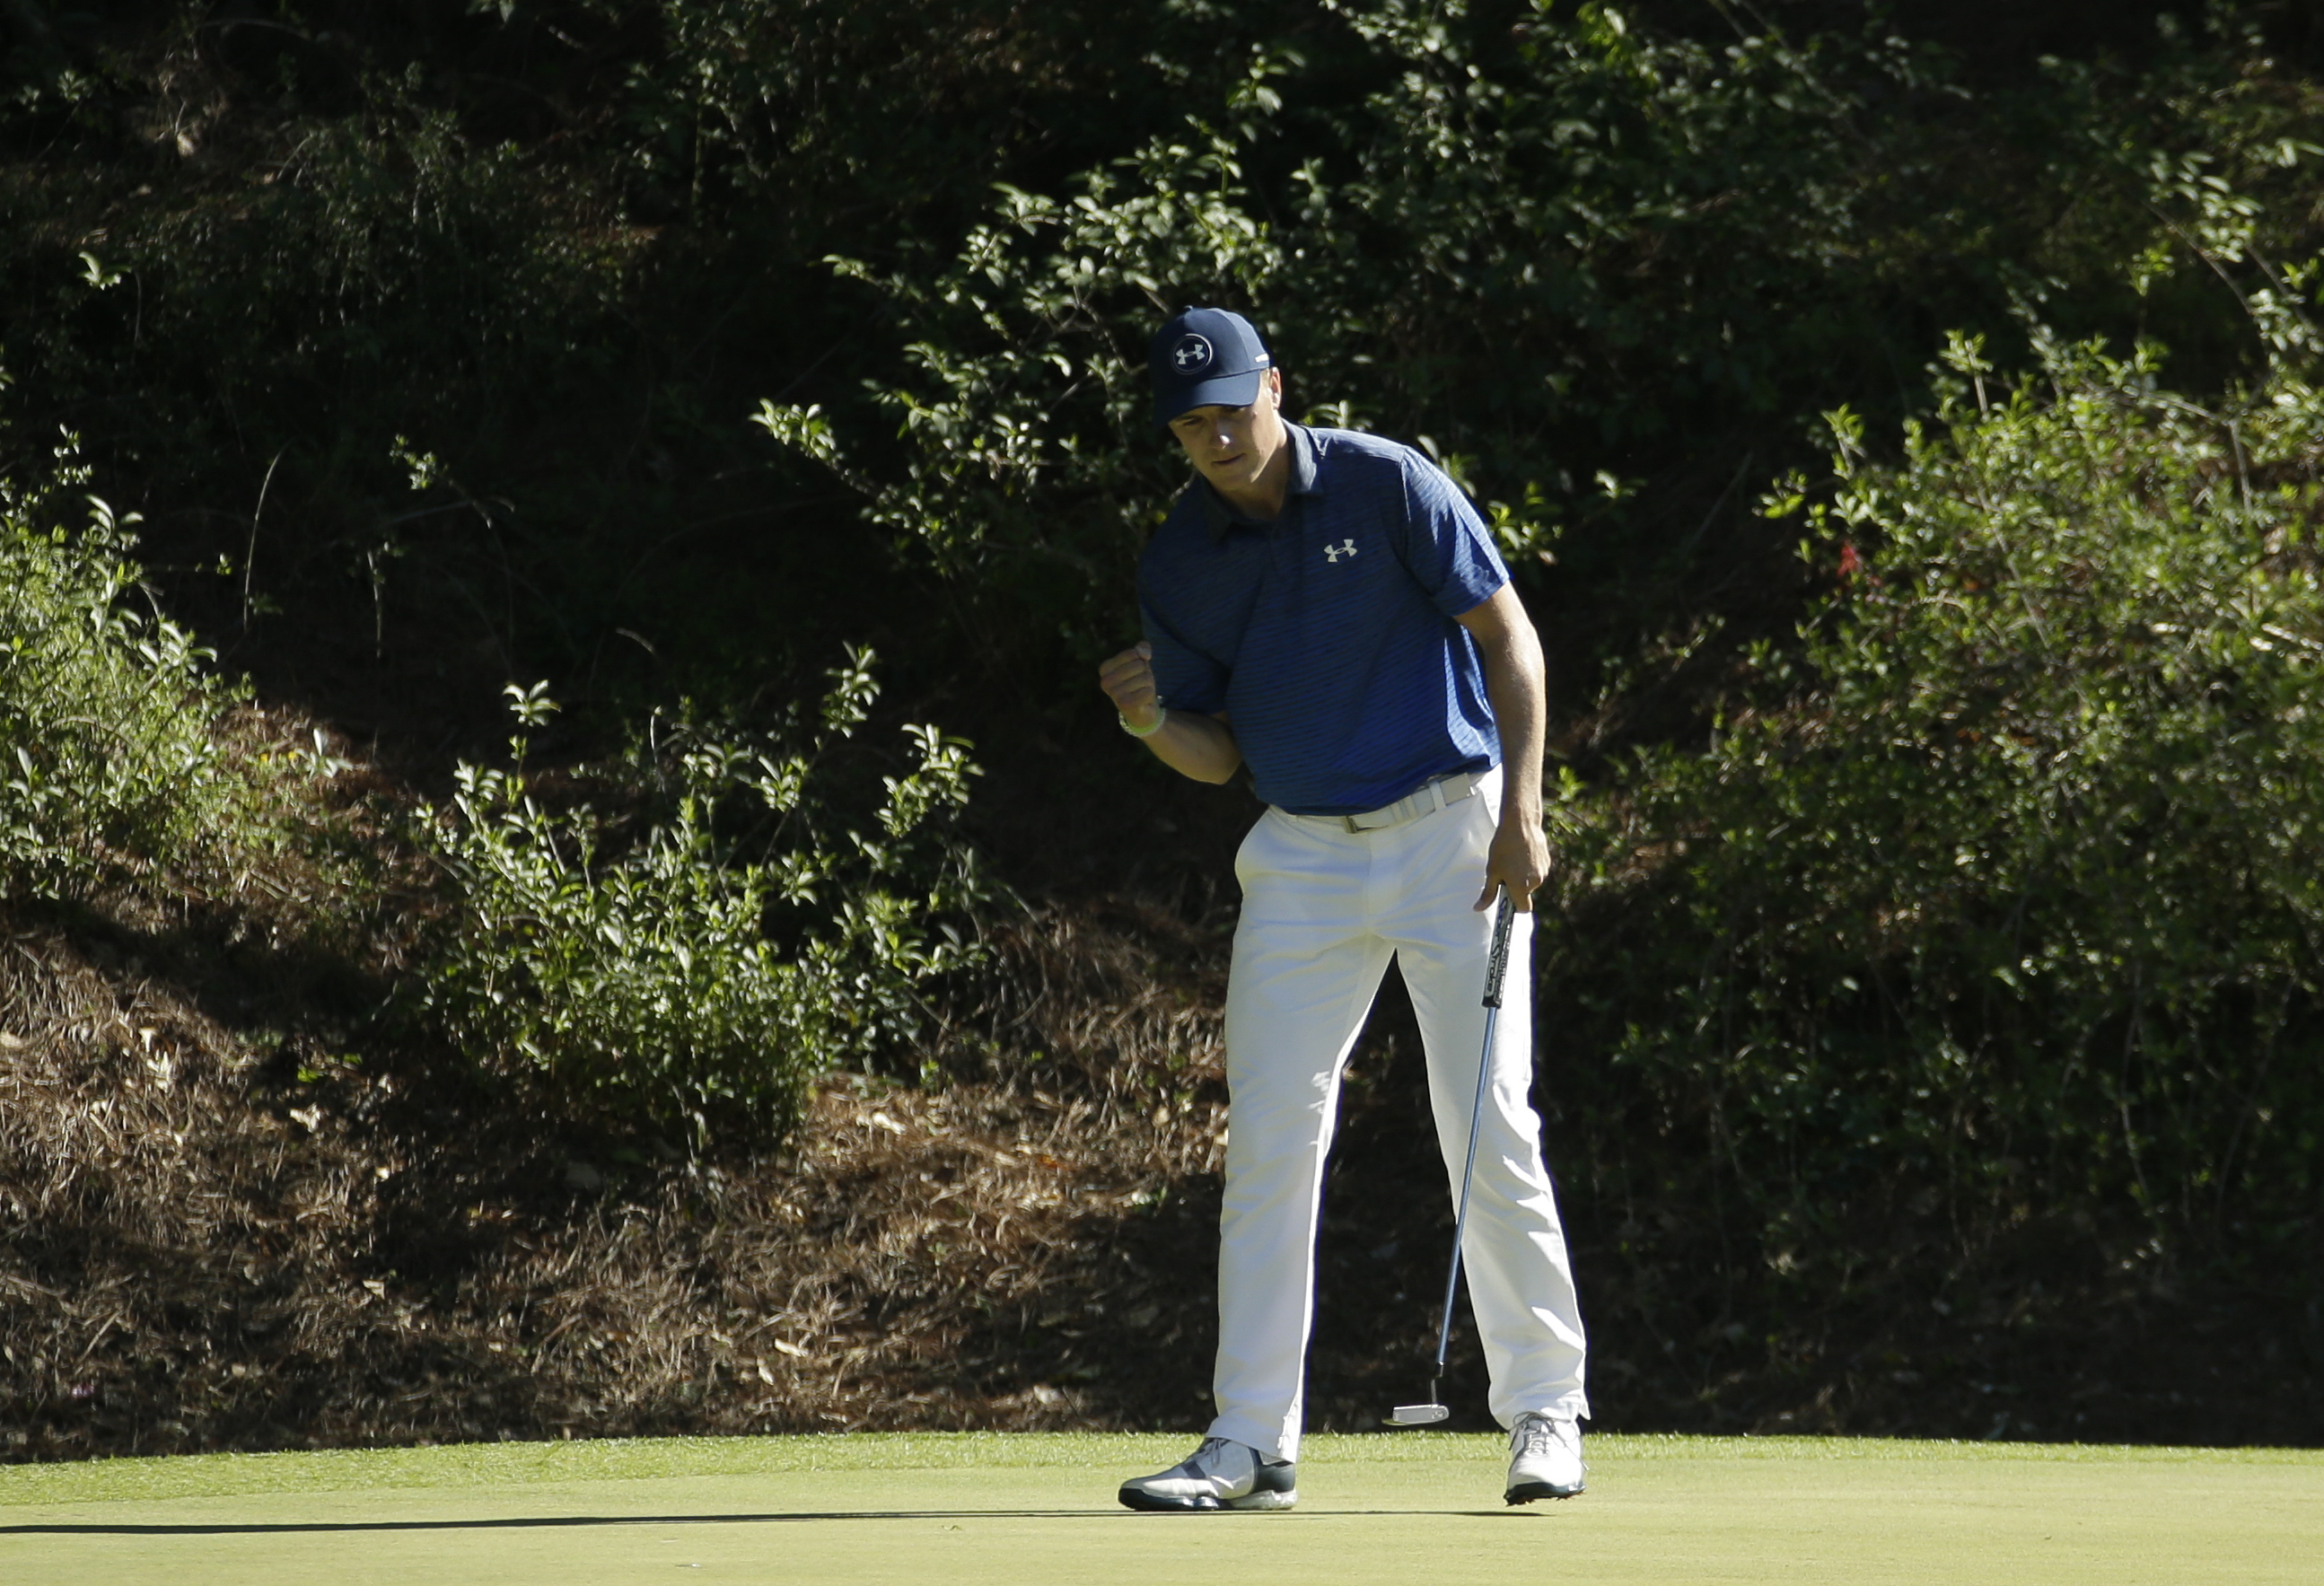 Jordan Spieth reacts to his par saving putt on the 12th hole during the third round of the Masters golf tournament Saturday, April 8, 2017, in Augusta, Ga. (AP Photo/Charlie Riedel)